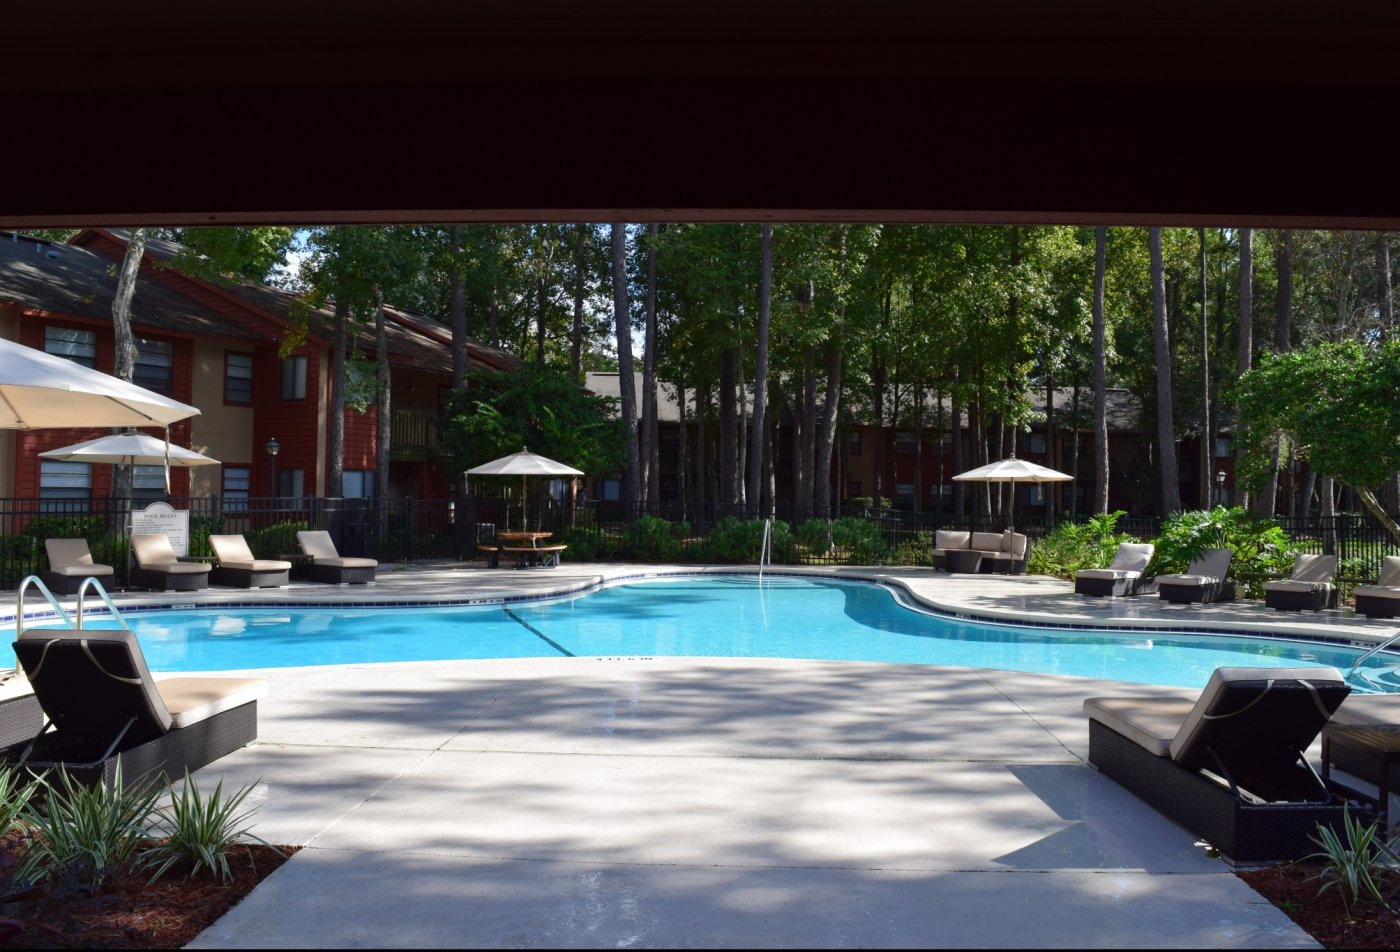 Swimming Pool | Apartment Homes In Jacksonville, FL | Deerfield Apartments  ...